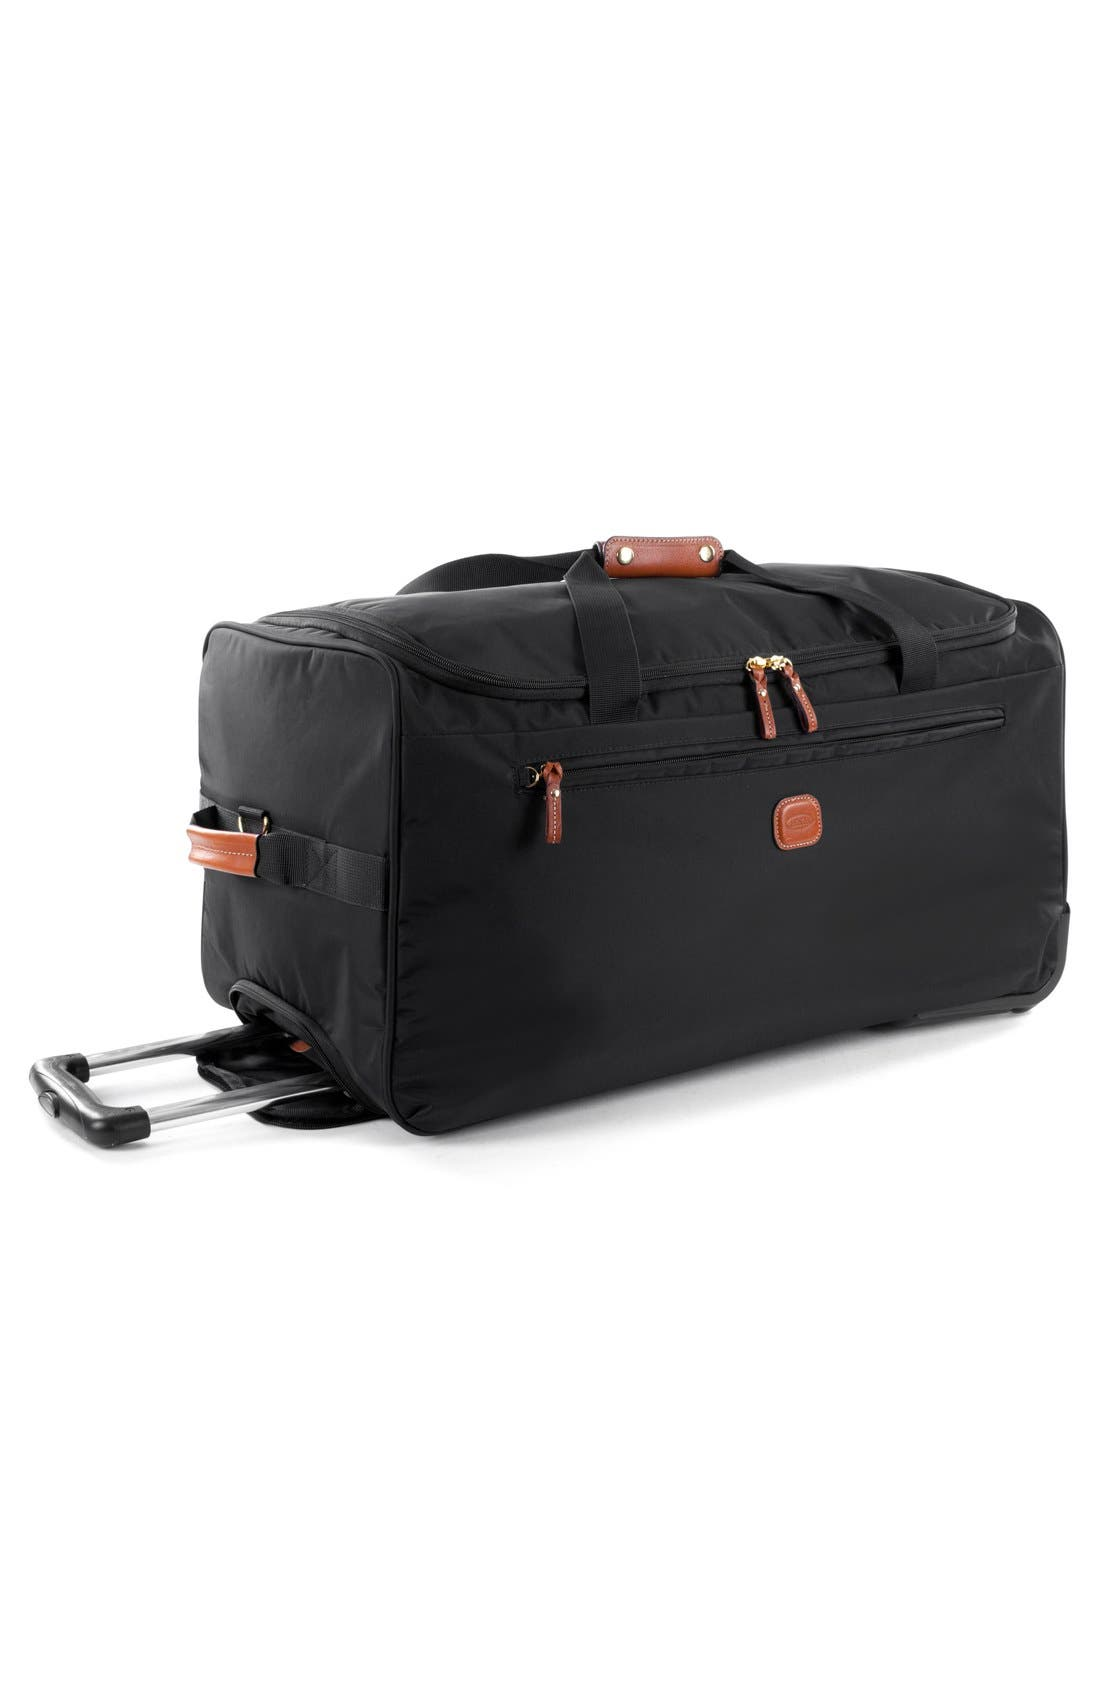 X-Bag 28-Inch Rolling Duffel Bag,                             Alternate thumbnail 3, color,                             BLACK